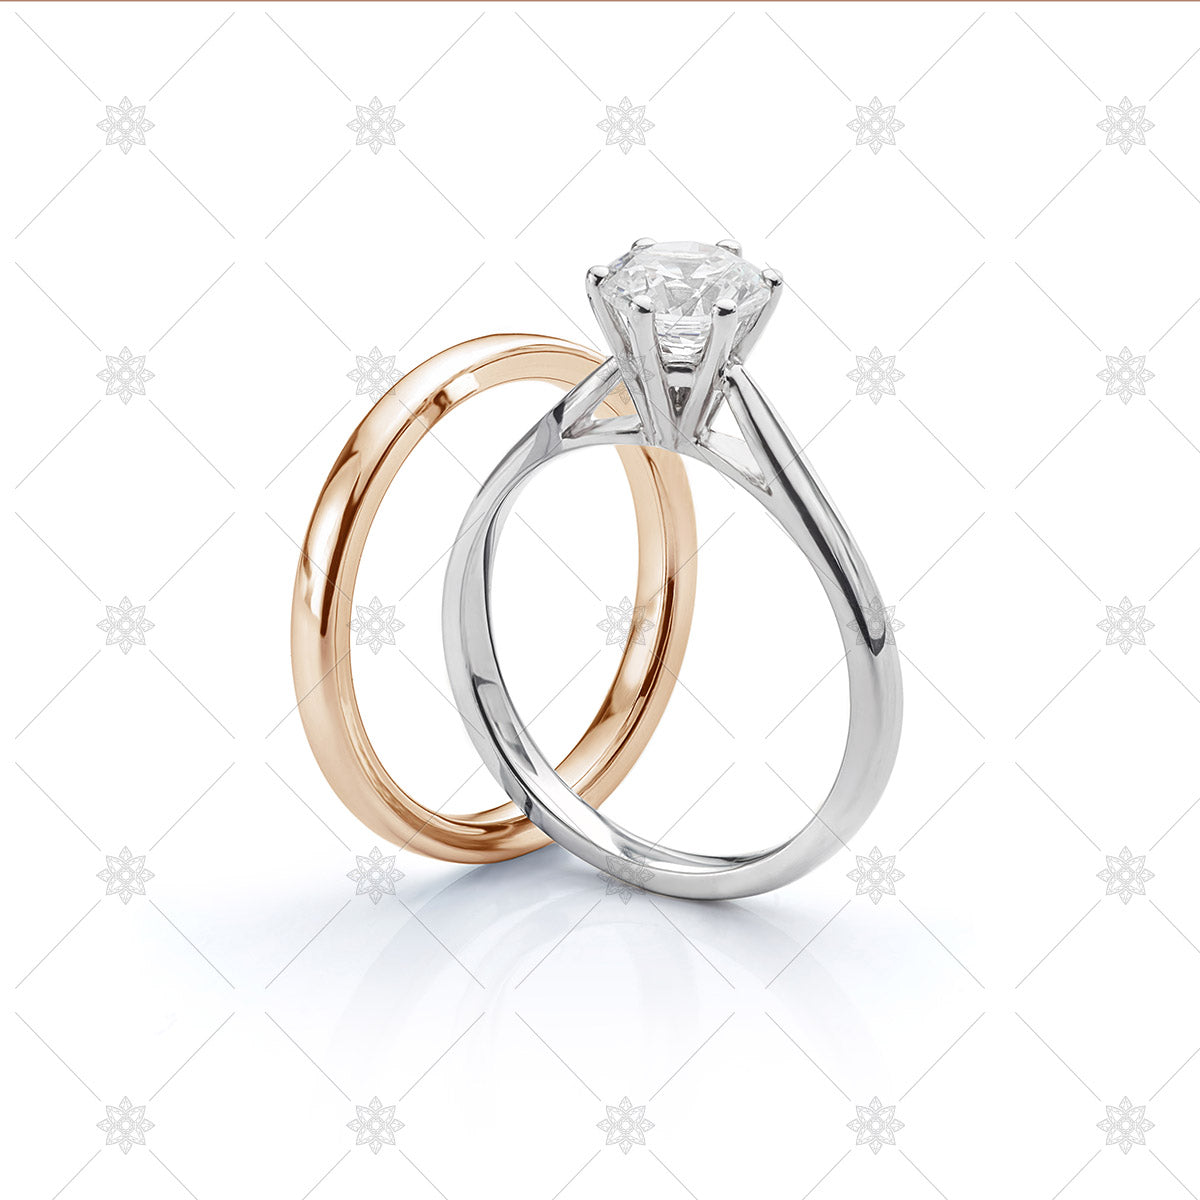 Rose Gold Wedding ring with WHite gold engagement ring